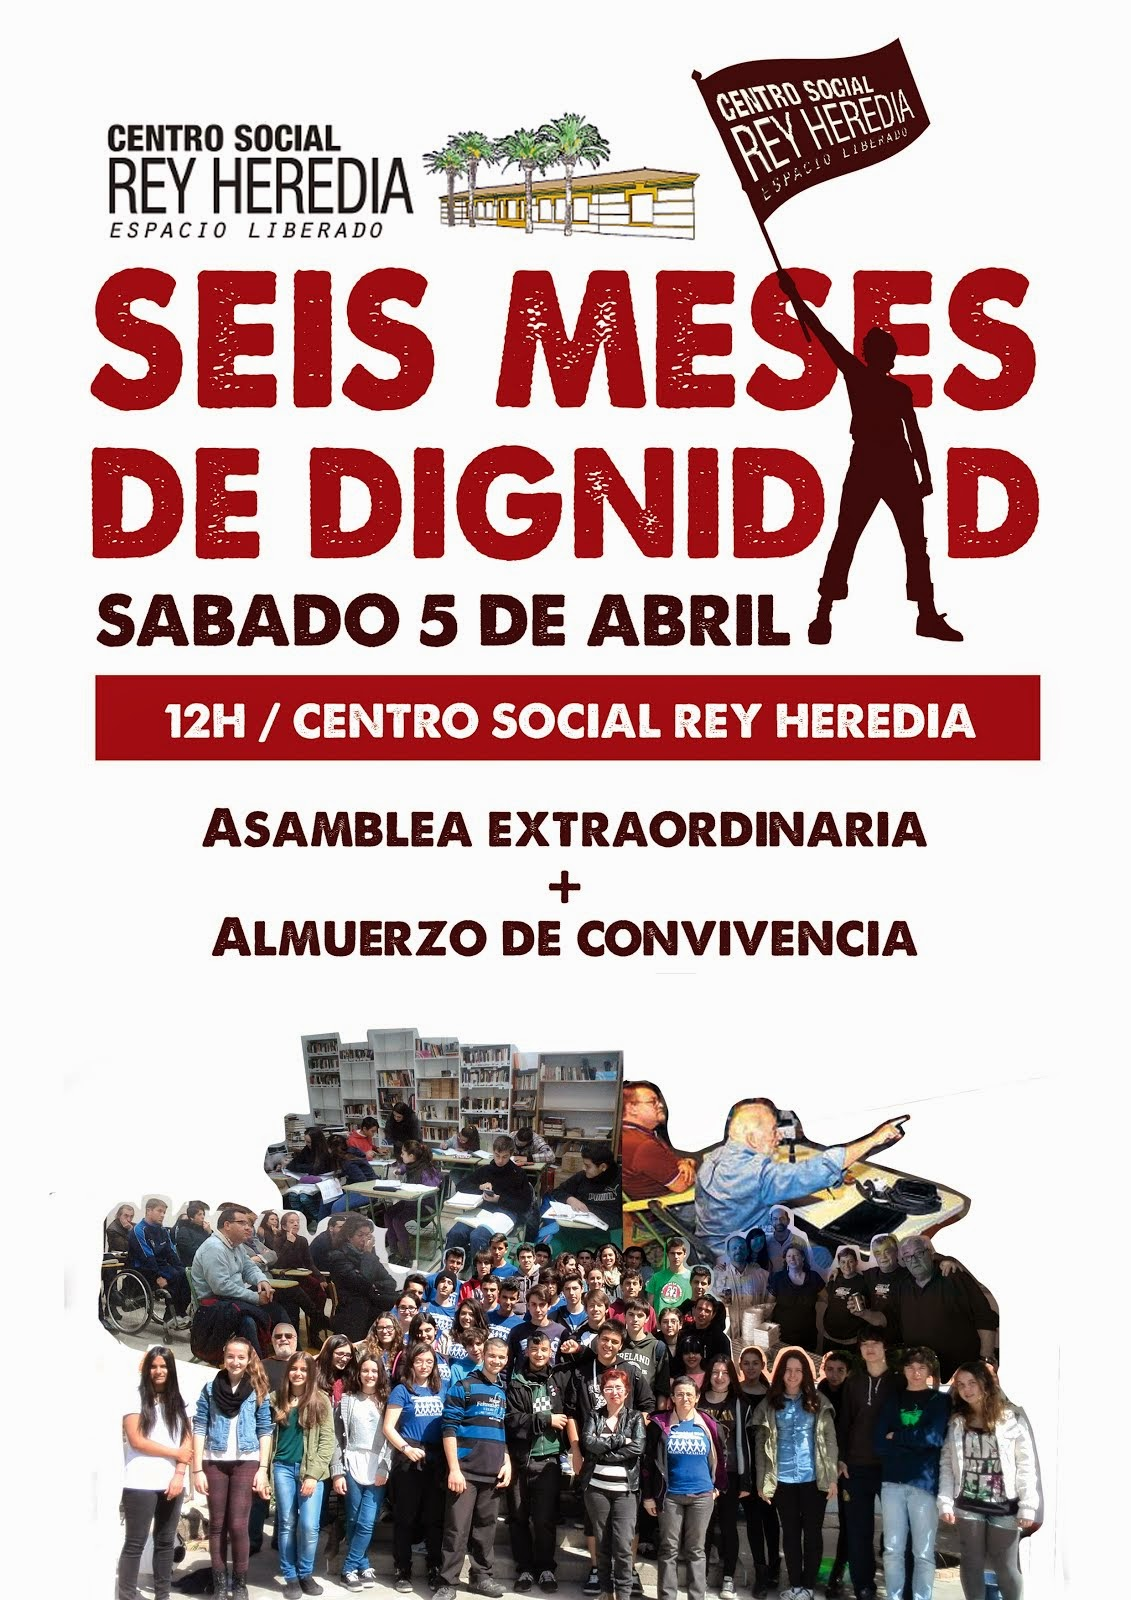 Acampada Dignidad